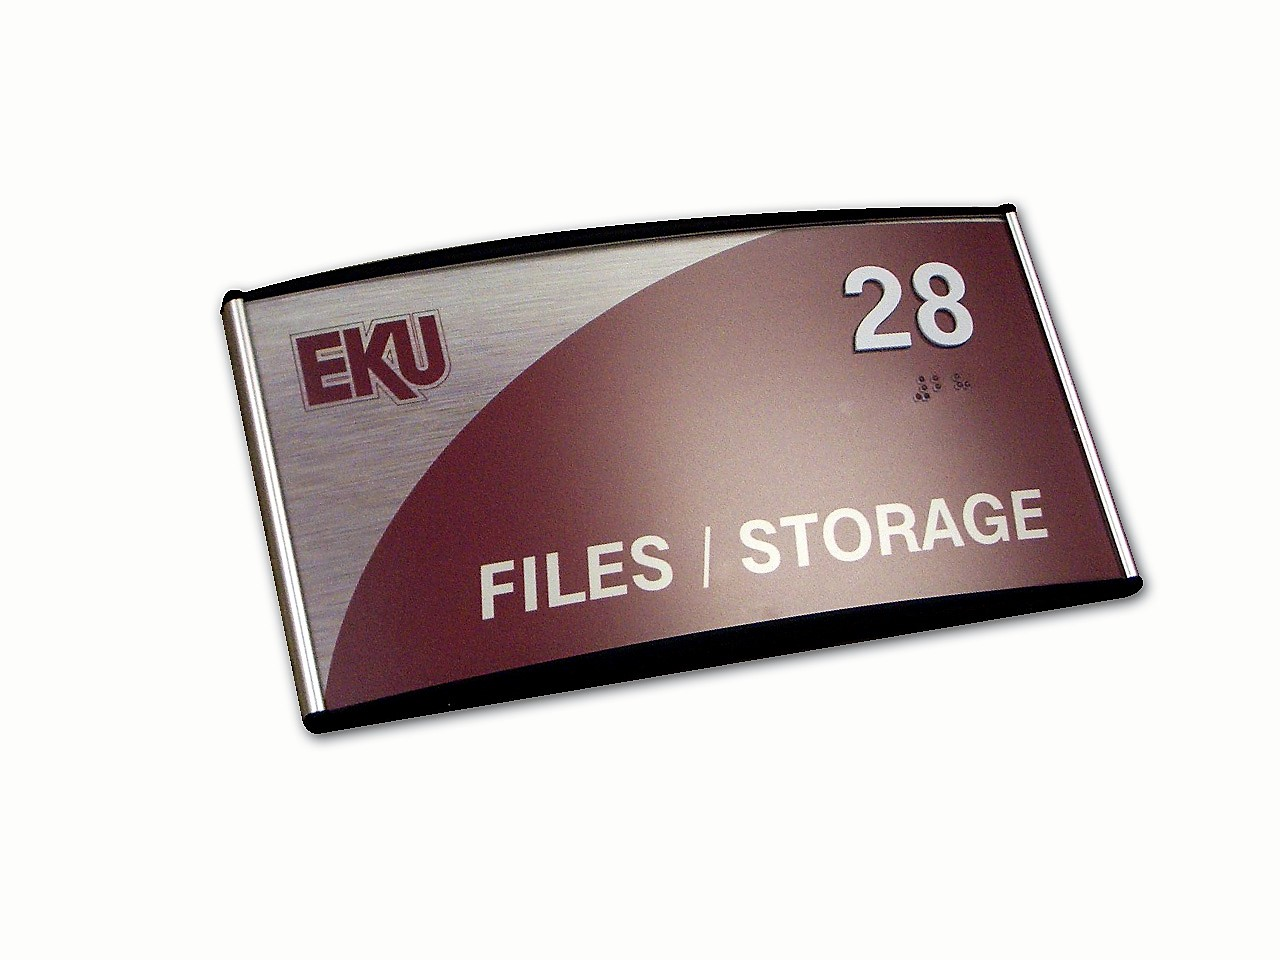 eastern kentucky university ada office sign curved frame